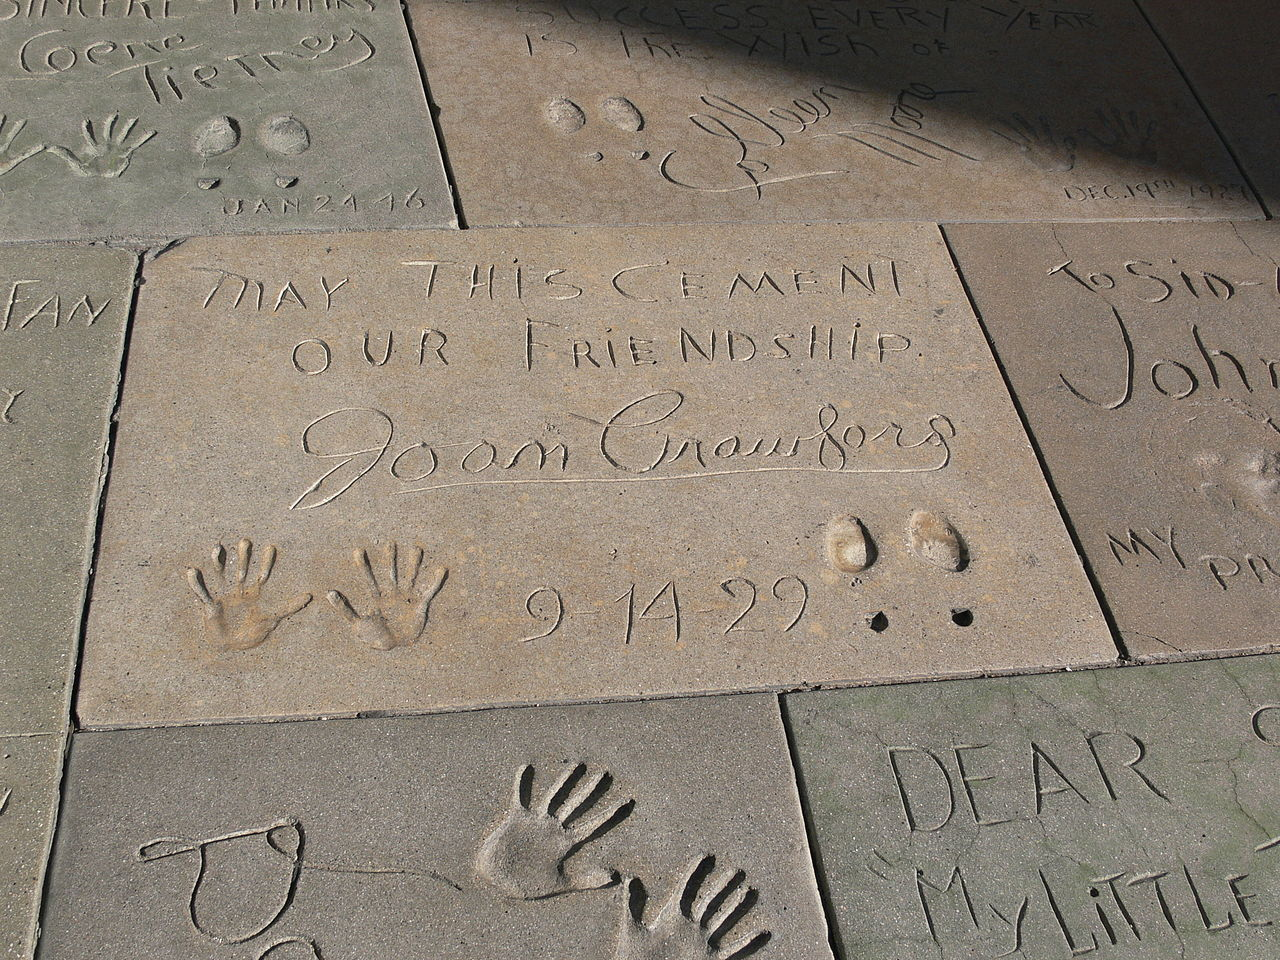 Tcl Chinese Theatre Vip Tour Price